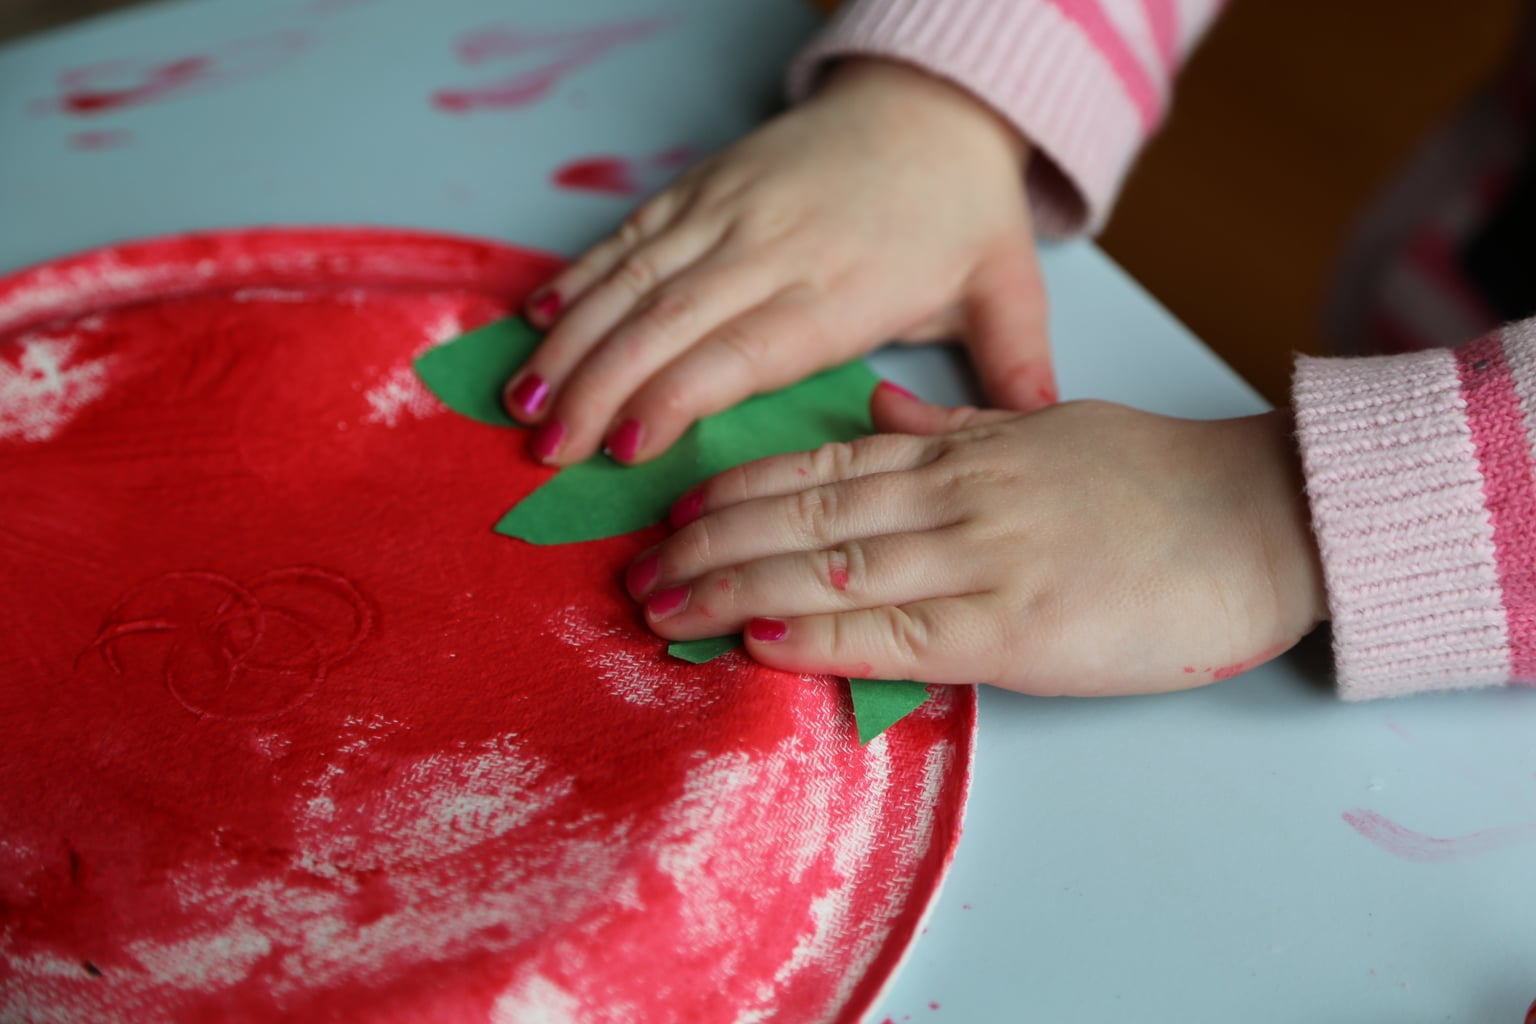 Child pasting stem onto plate